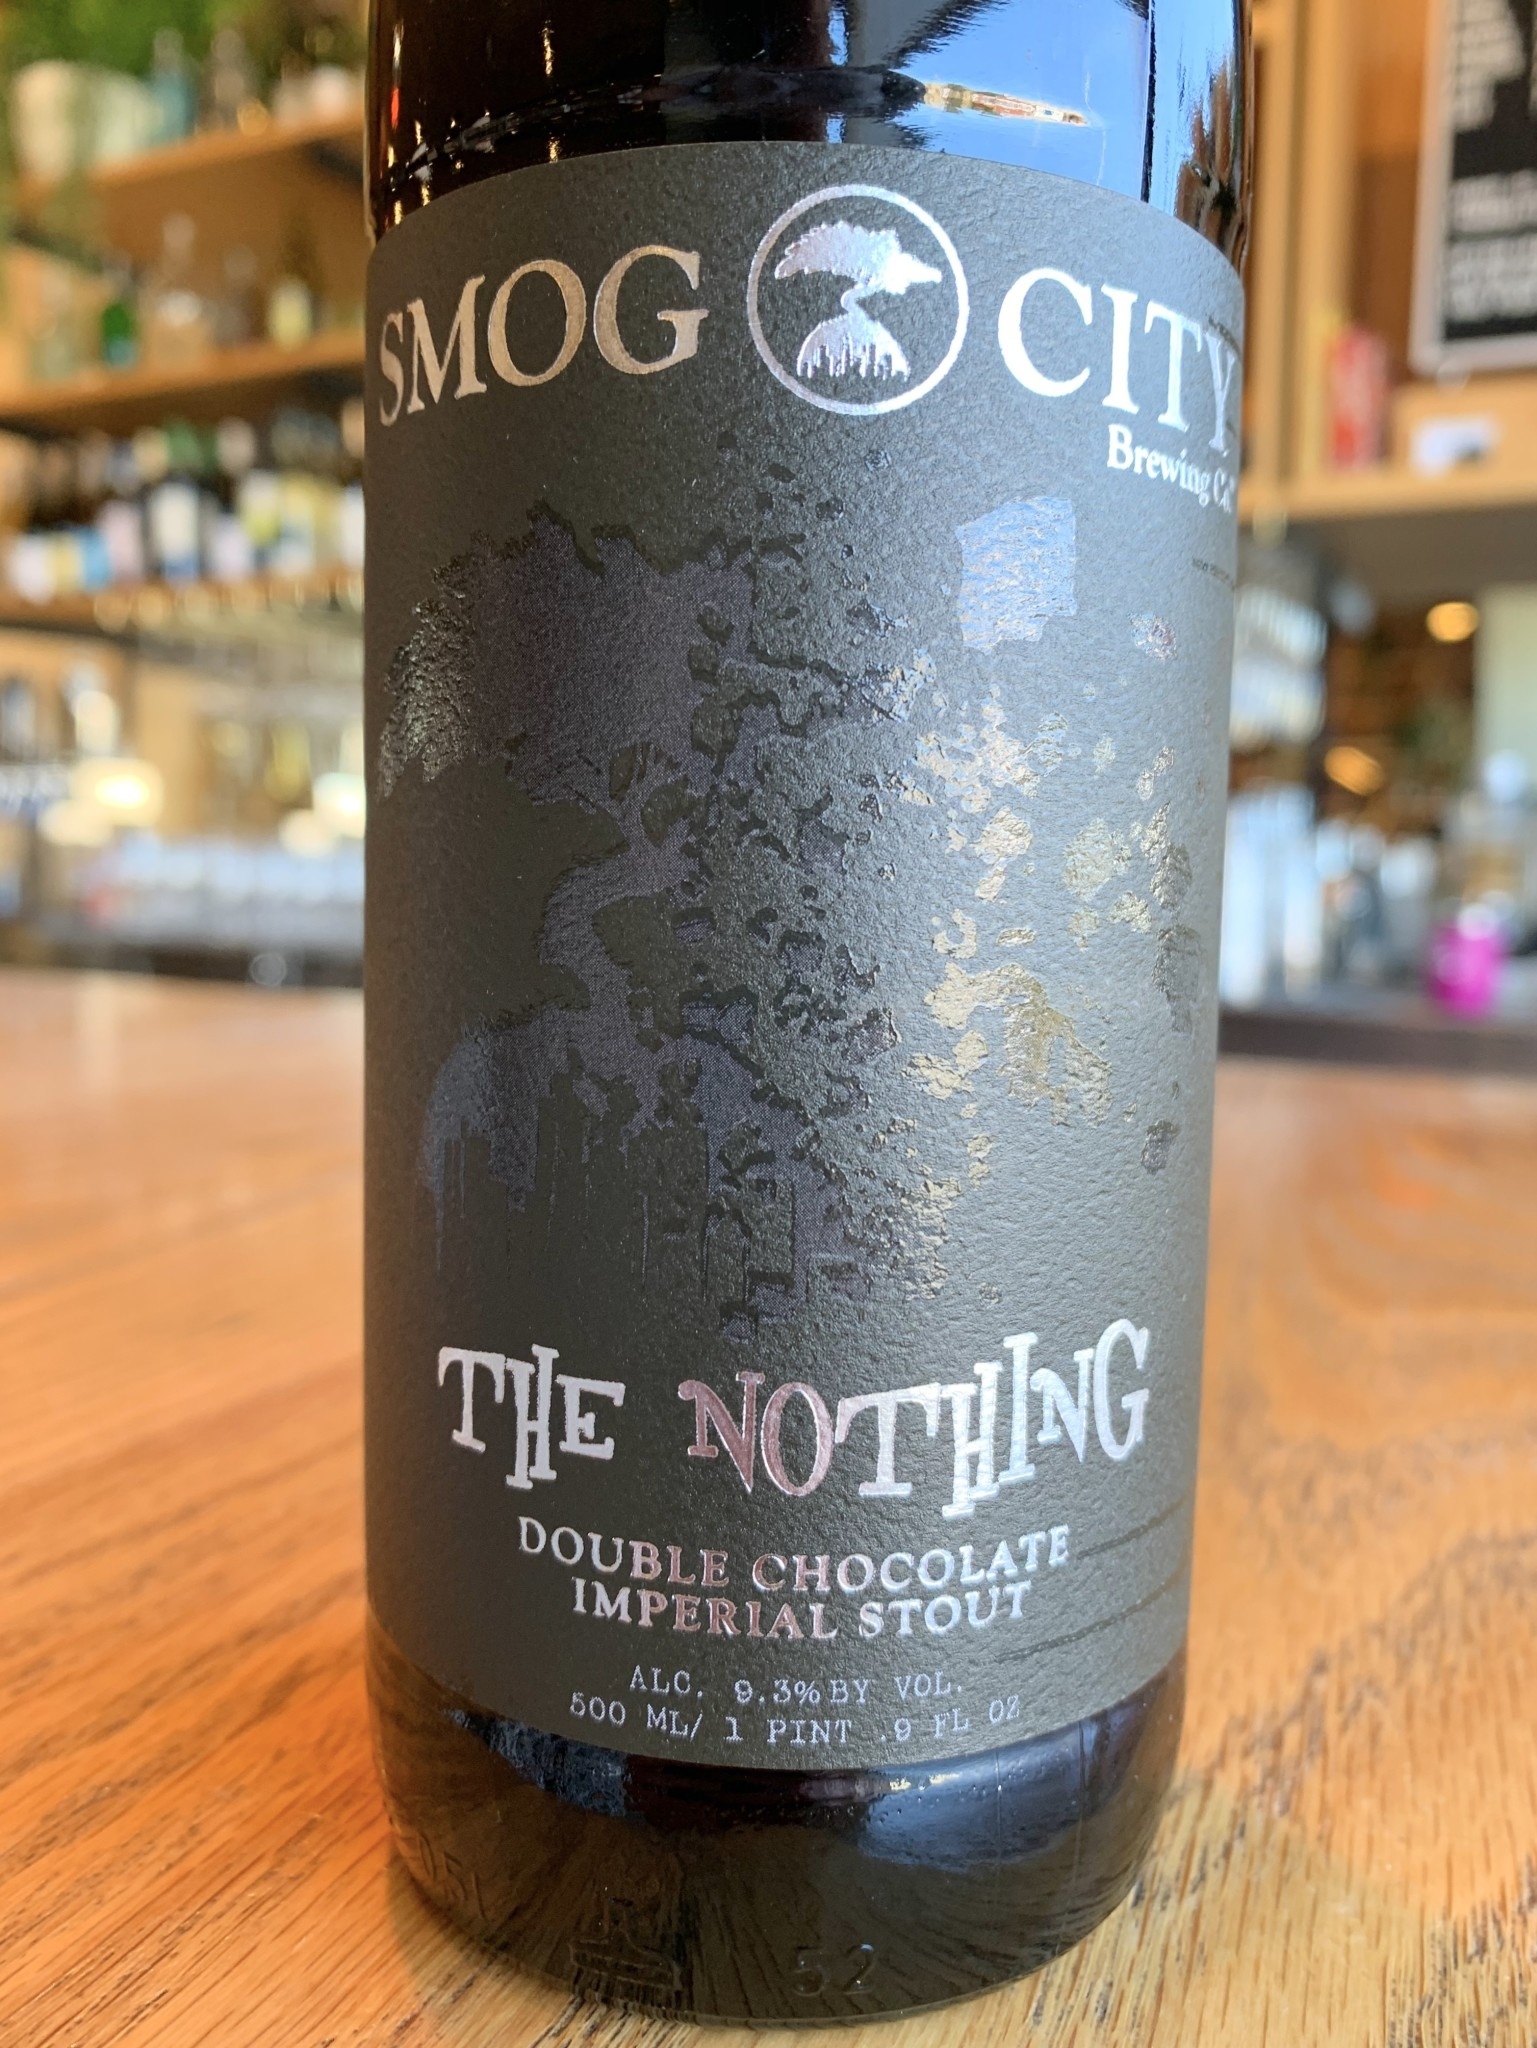 Smog City Brewing Co. Smog City The Nothing Double Chocolate Imperial Stout 500mL